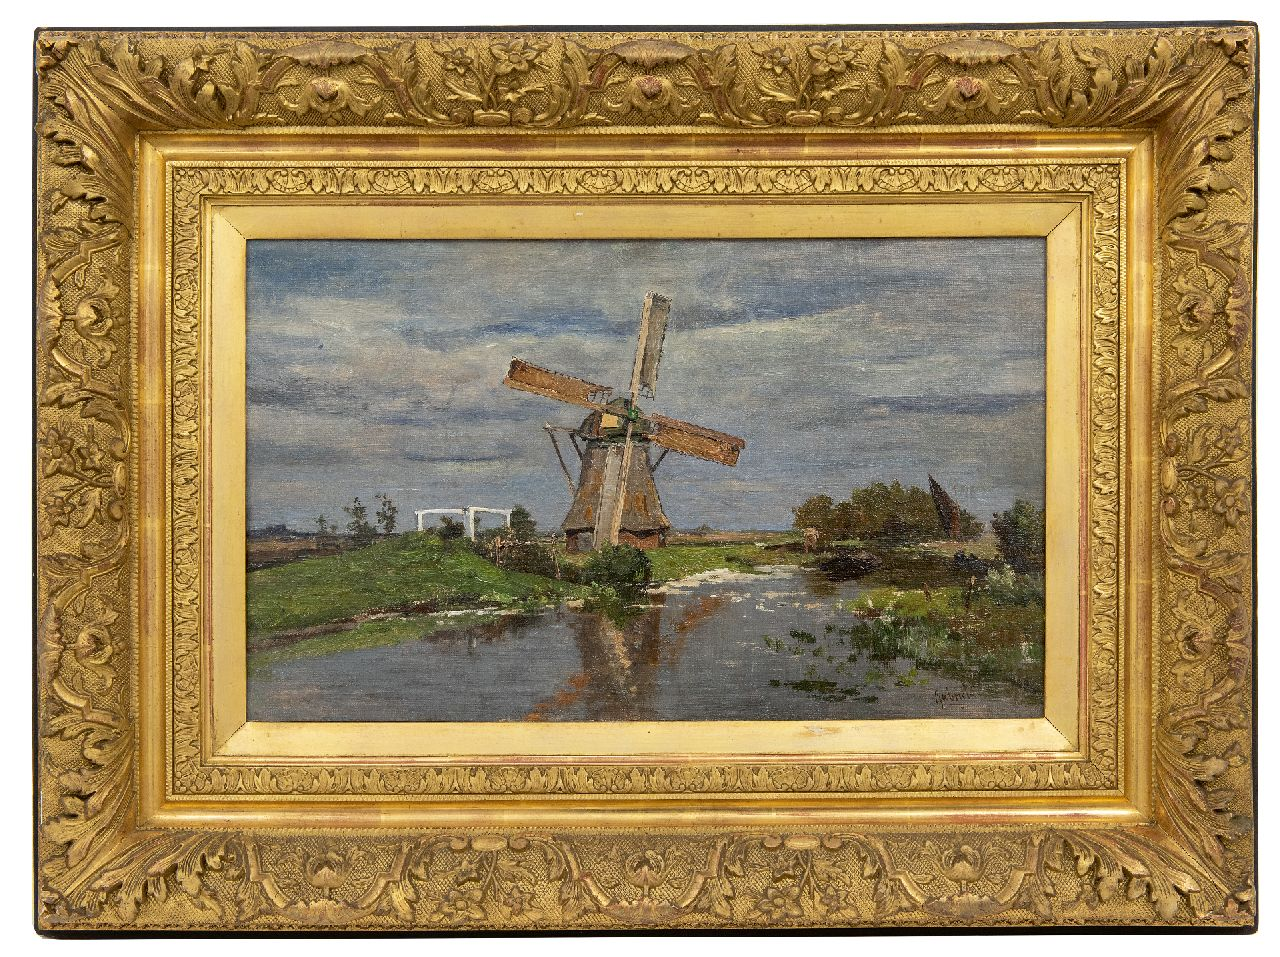 Gabriel P.J.C.  | Paul Joseph Constantin 'Constan(t)' Gabriel | Paintings offered for sale | Windmill near Giethoorn, oil on canvas laid down on panel 32.2 x 54.2 cm, signed l.r.